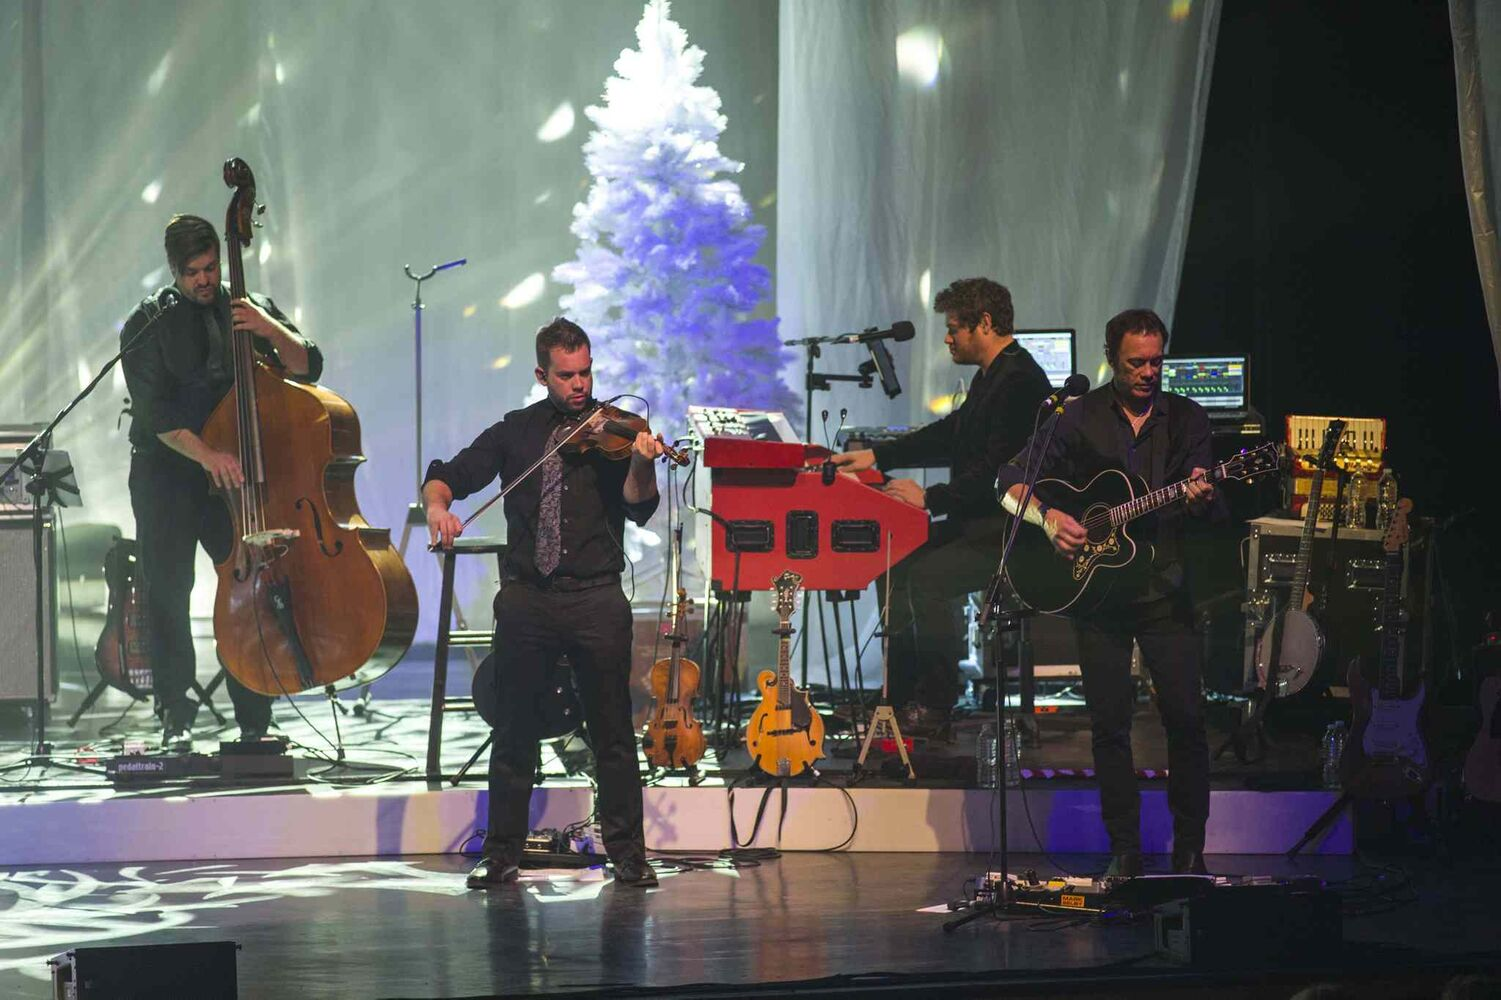 The band plays on during the Johnny Reid concert. (DAVID LIPNOWSKI / WINNIPEG FREE PRESS)